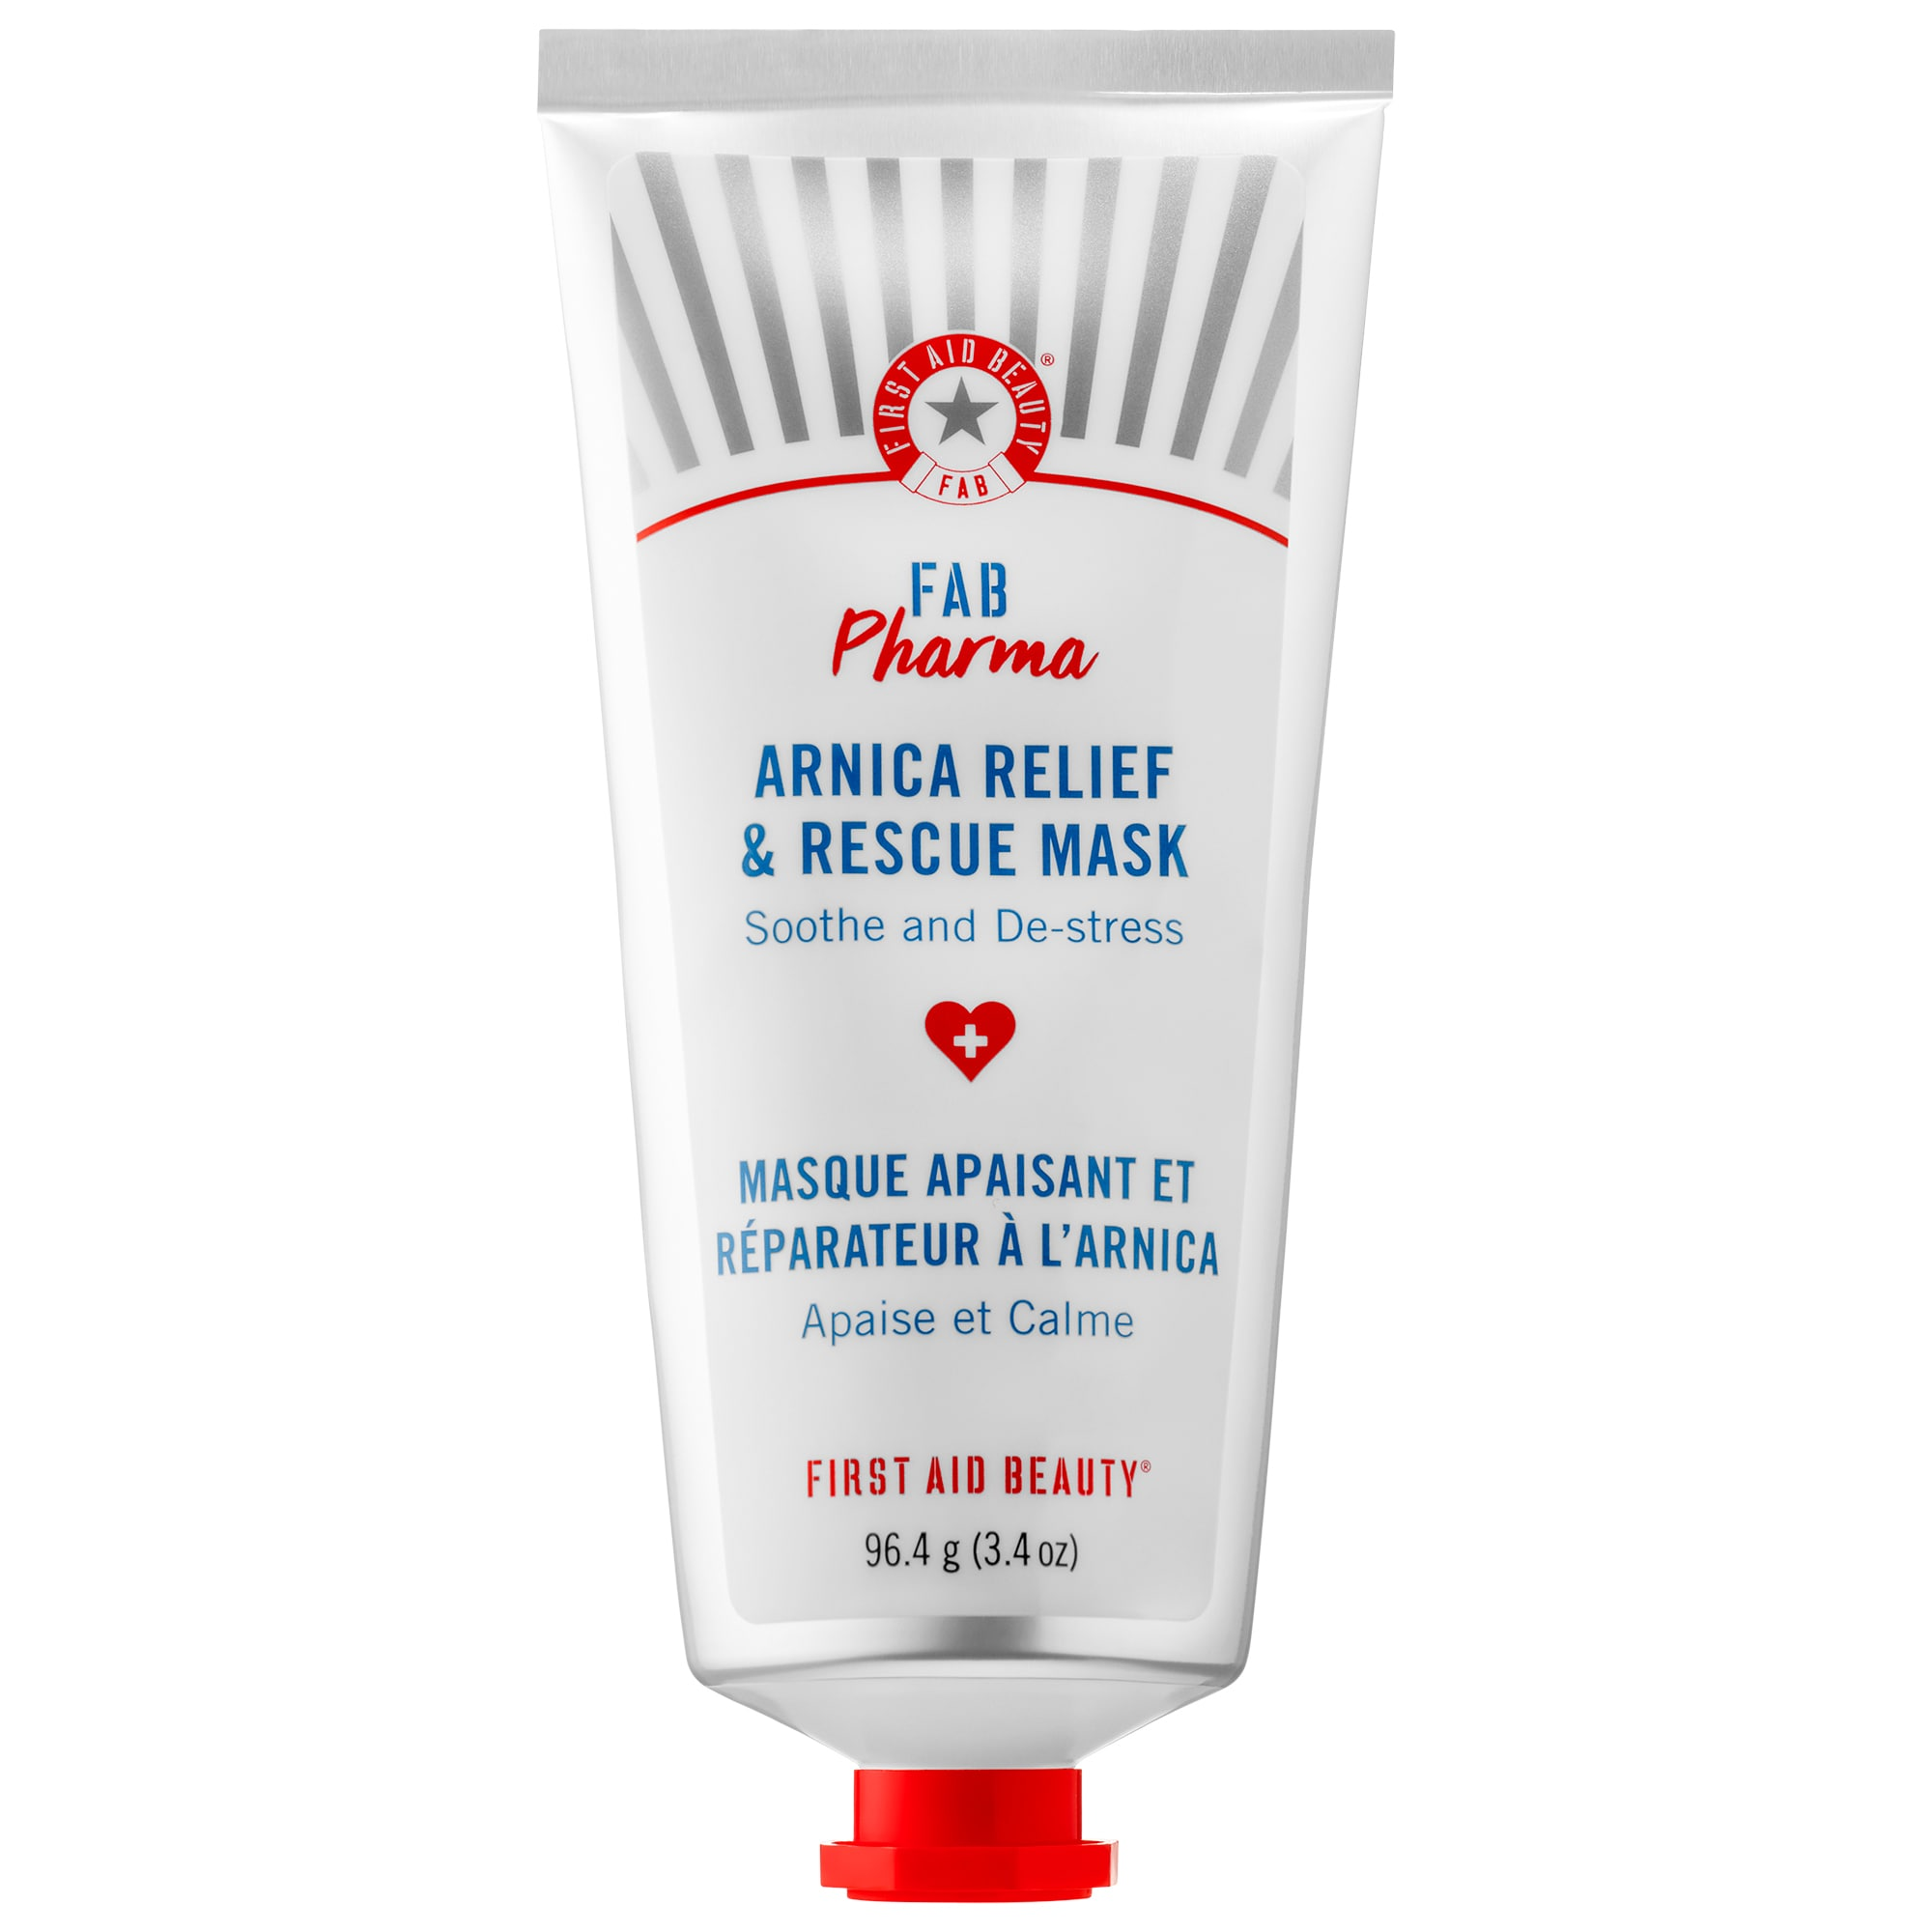 First Aid Beauty - FAB Pharma Arnica Relief & Rescue Mask